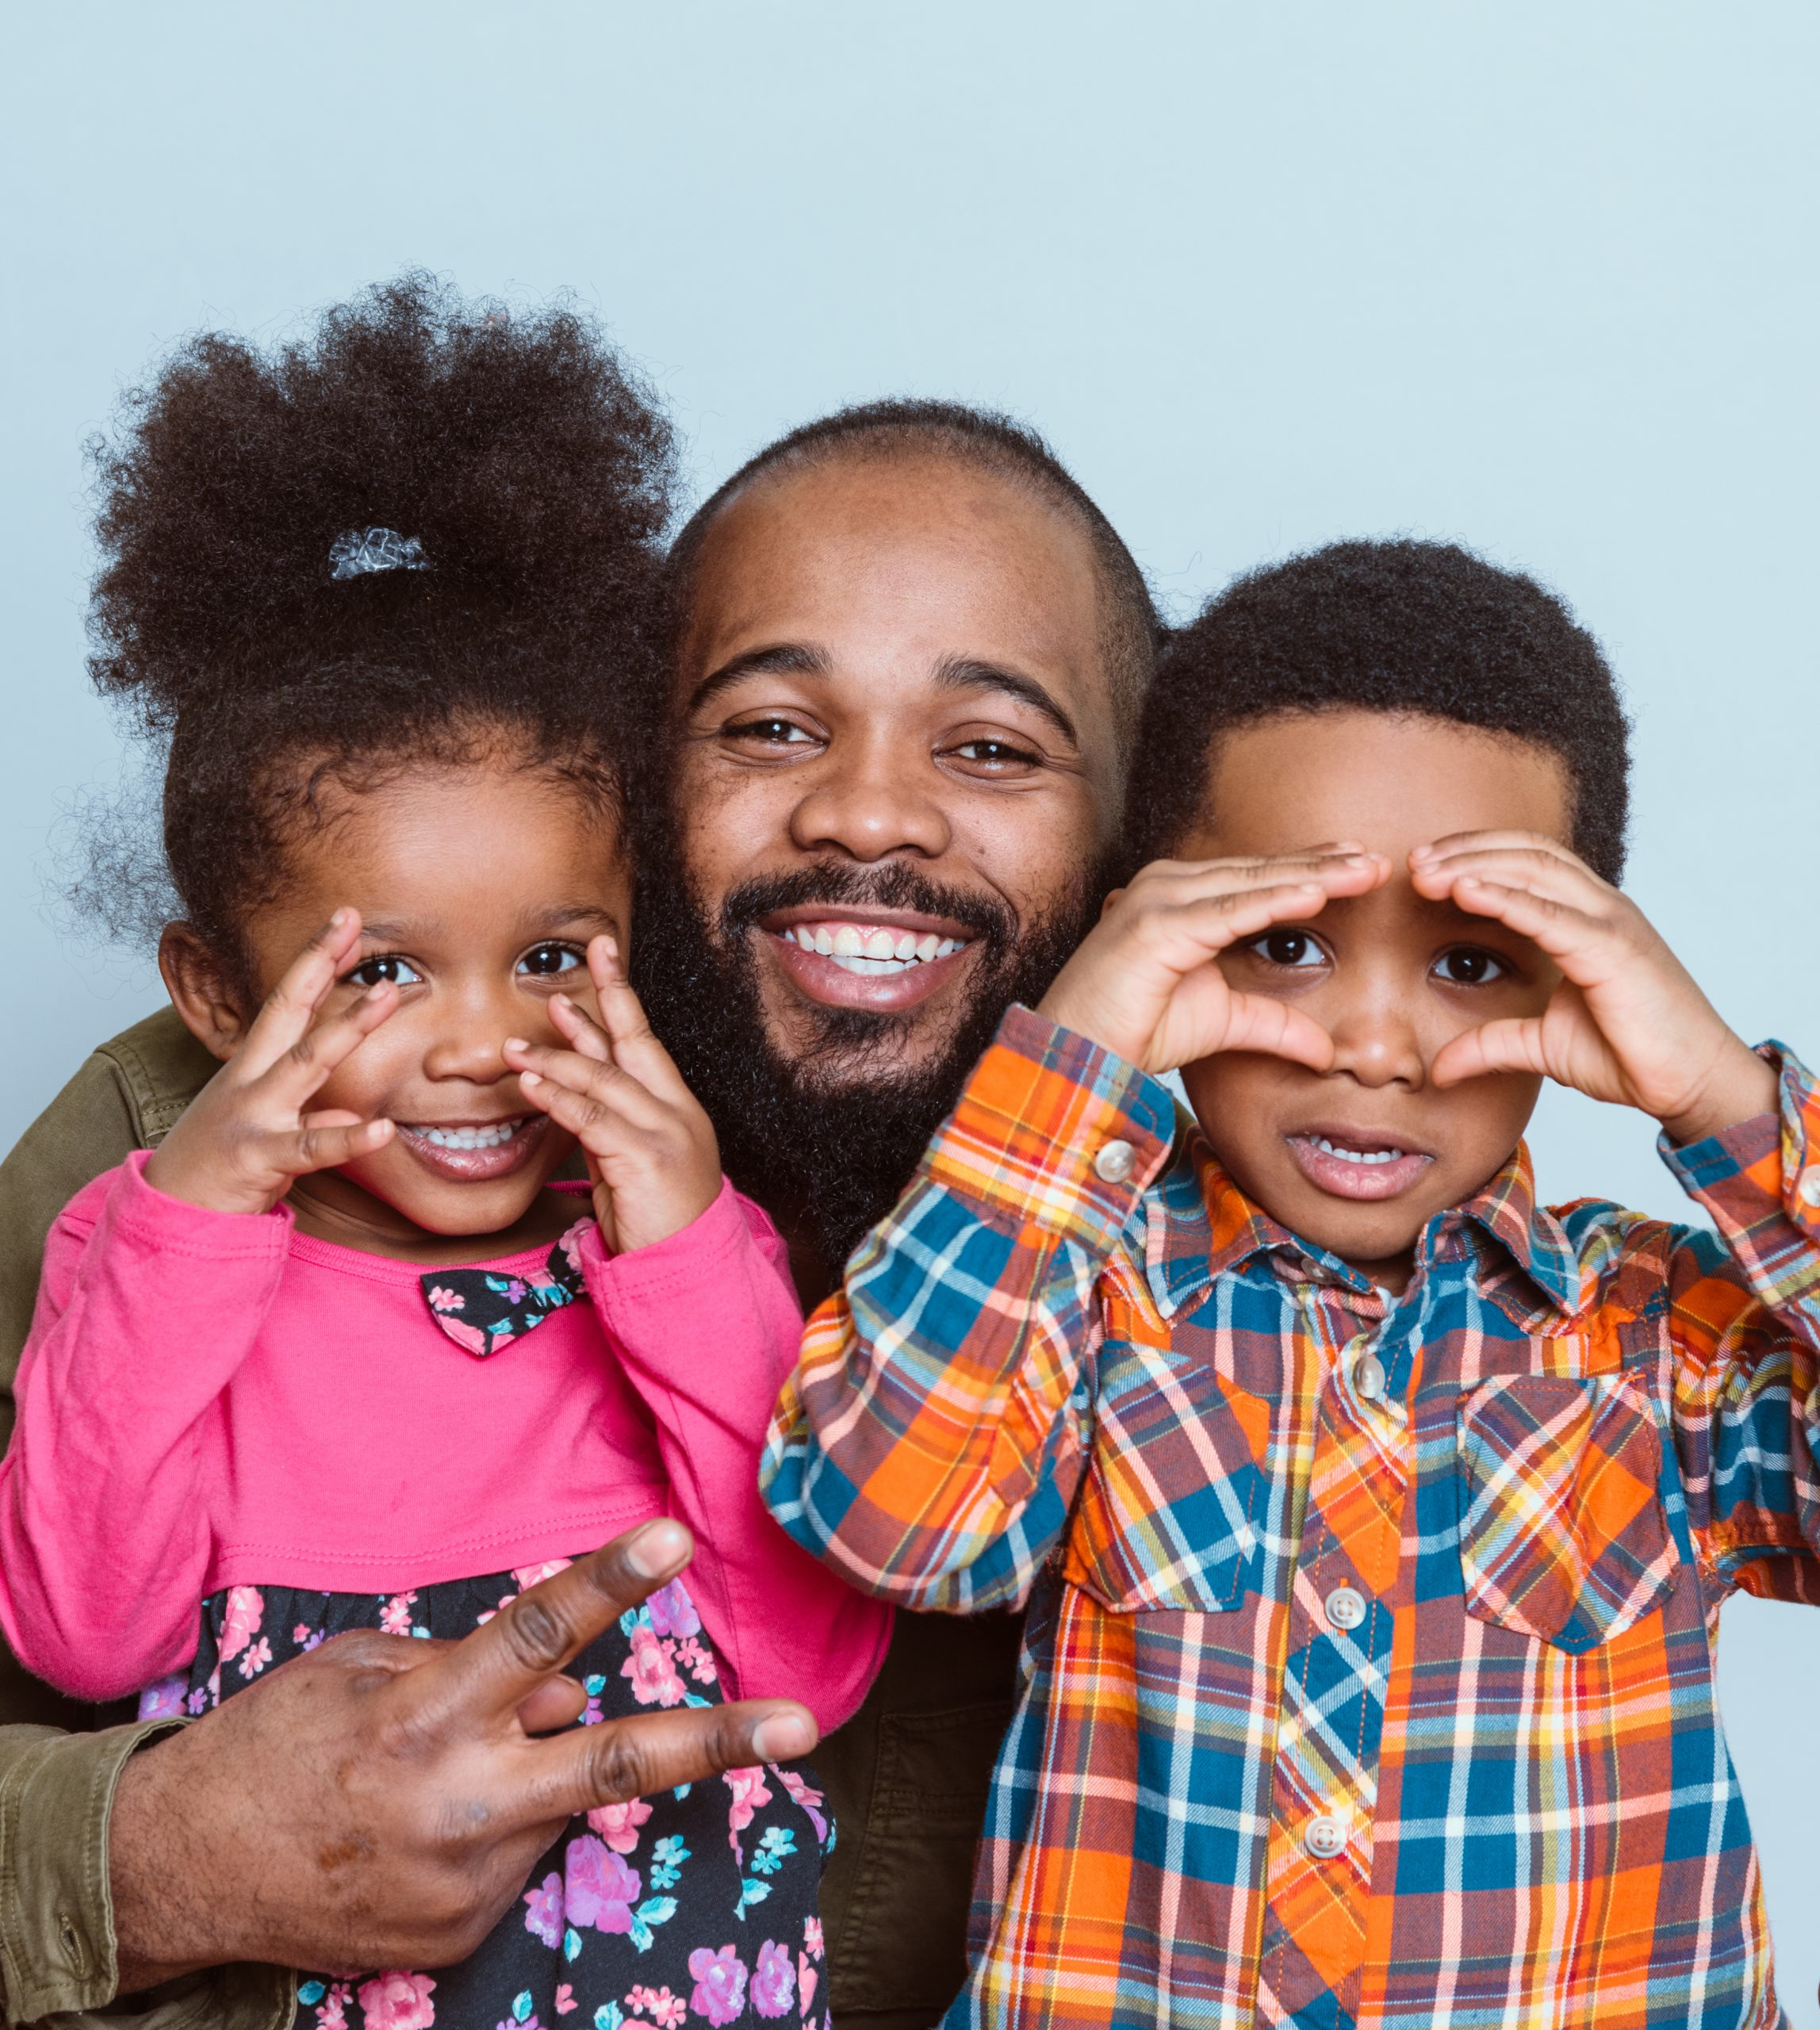 black-father-and-two-diverse-kids-looking-happy-an-B9S8THV